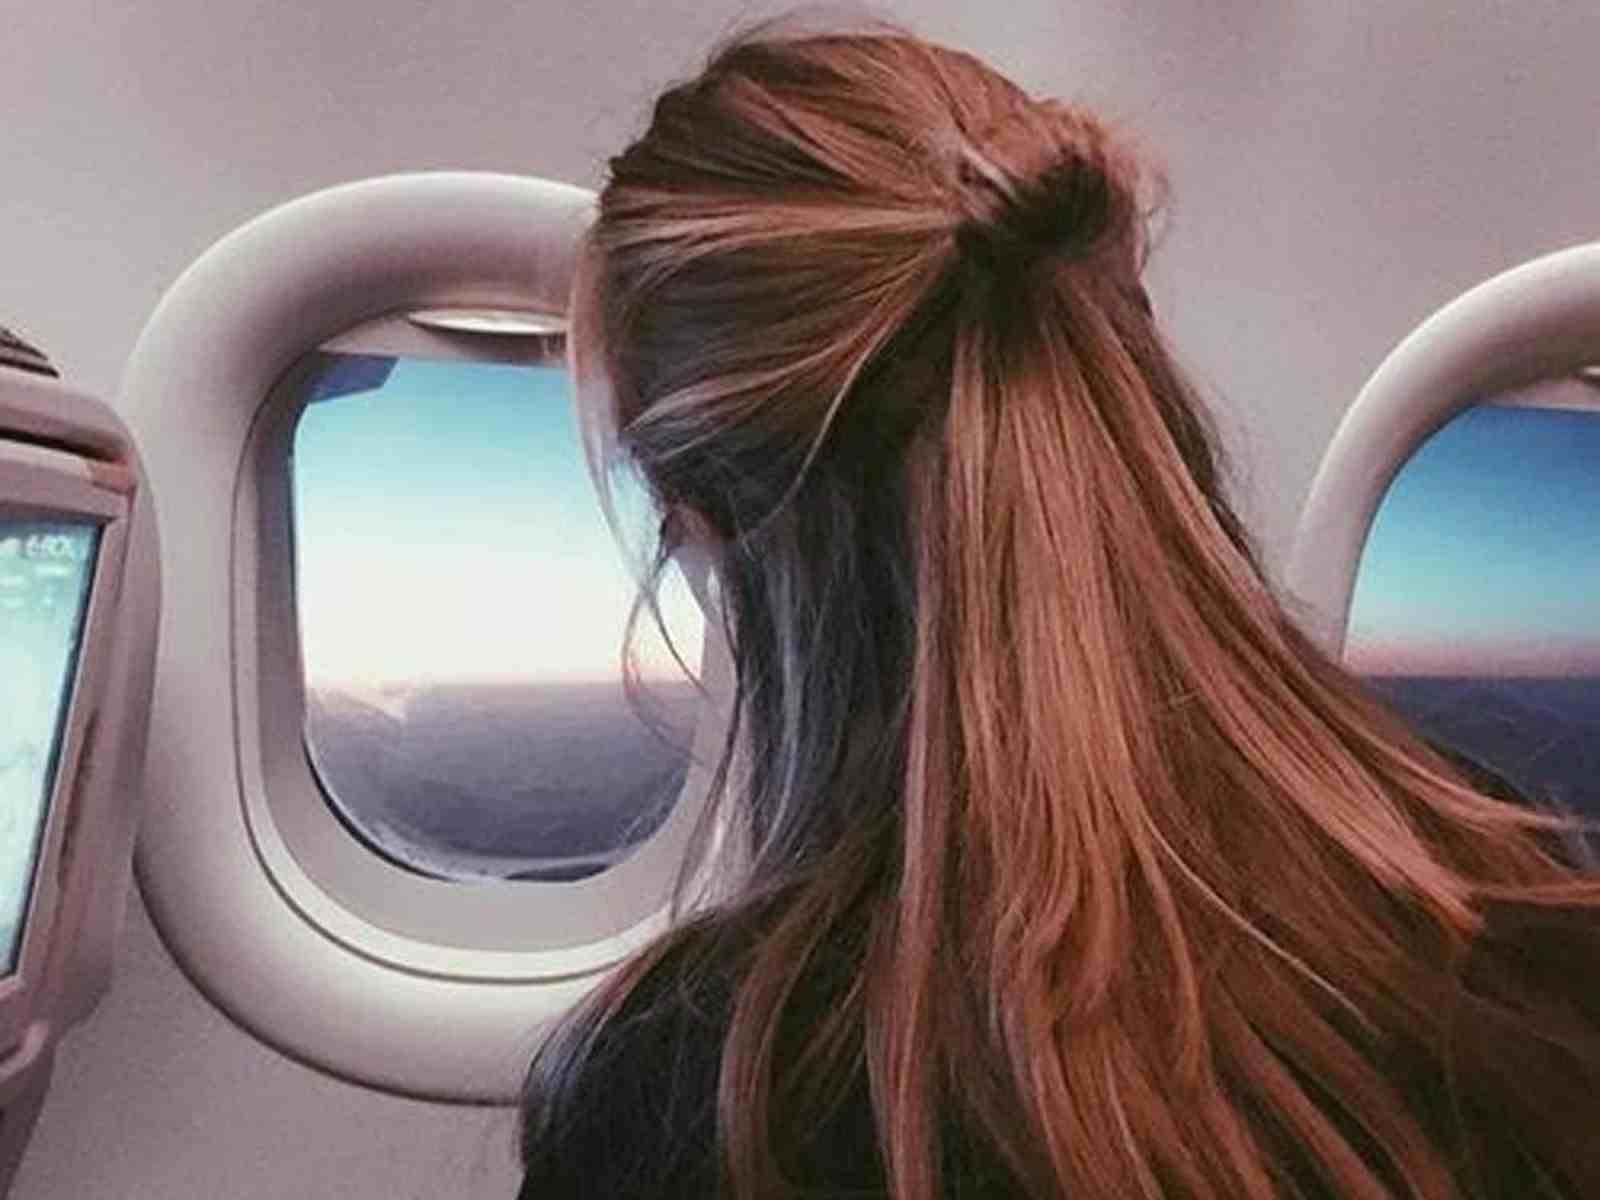 Traveling by plane can be an adventure of its own. Sadly, there are things people do that just suck all the fun from it. At some point or another, many frequent travelers have found themselves wondering why people act the way they do. Here are 19 of the most annoying things people do on airplanes.